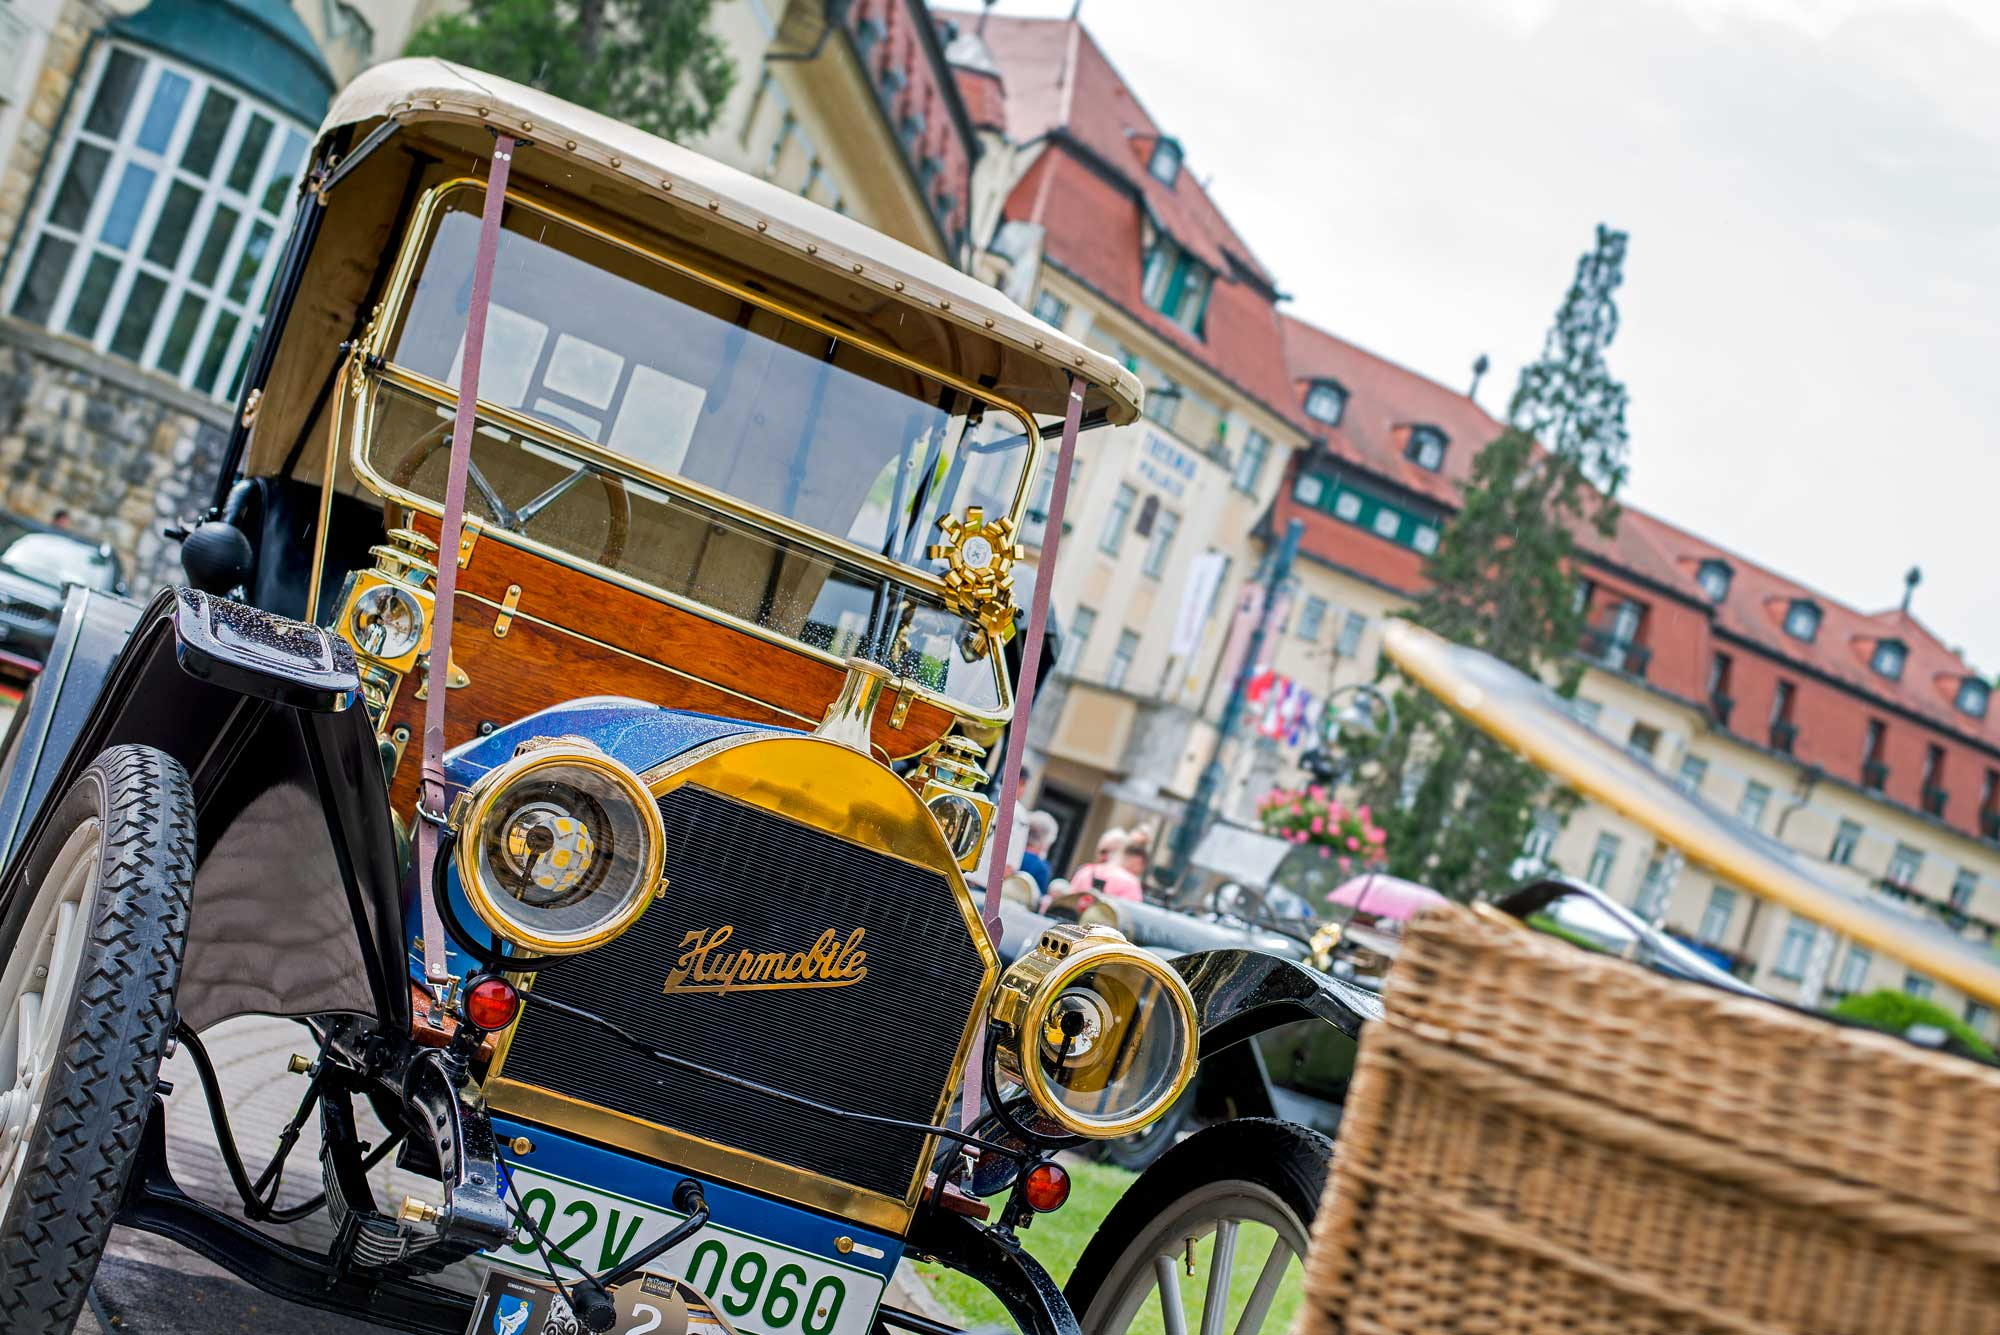 Concours d'elegance 2018 | Piestany (SK)